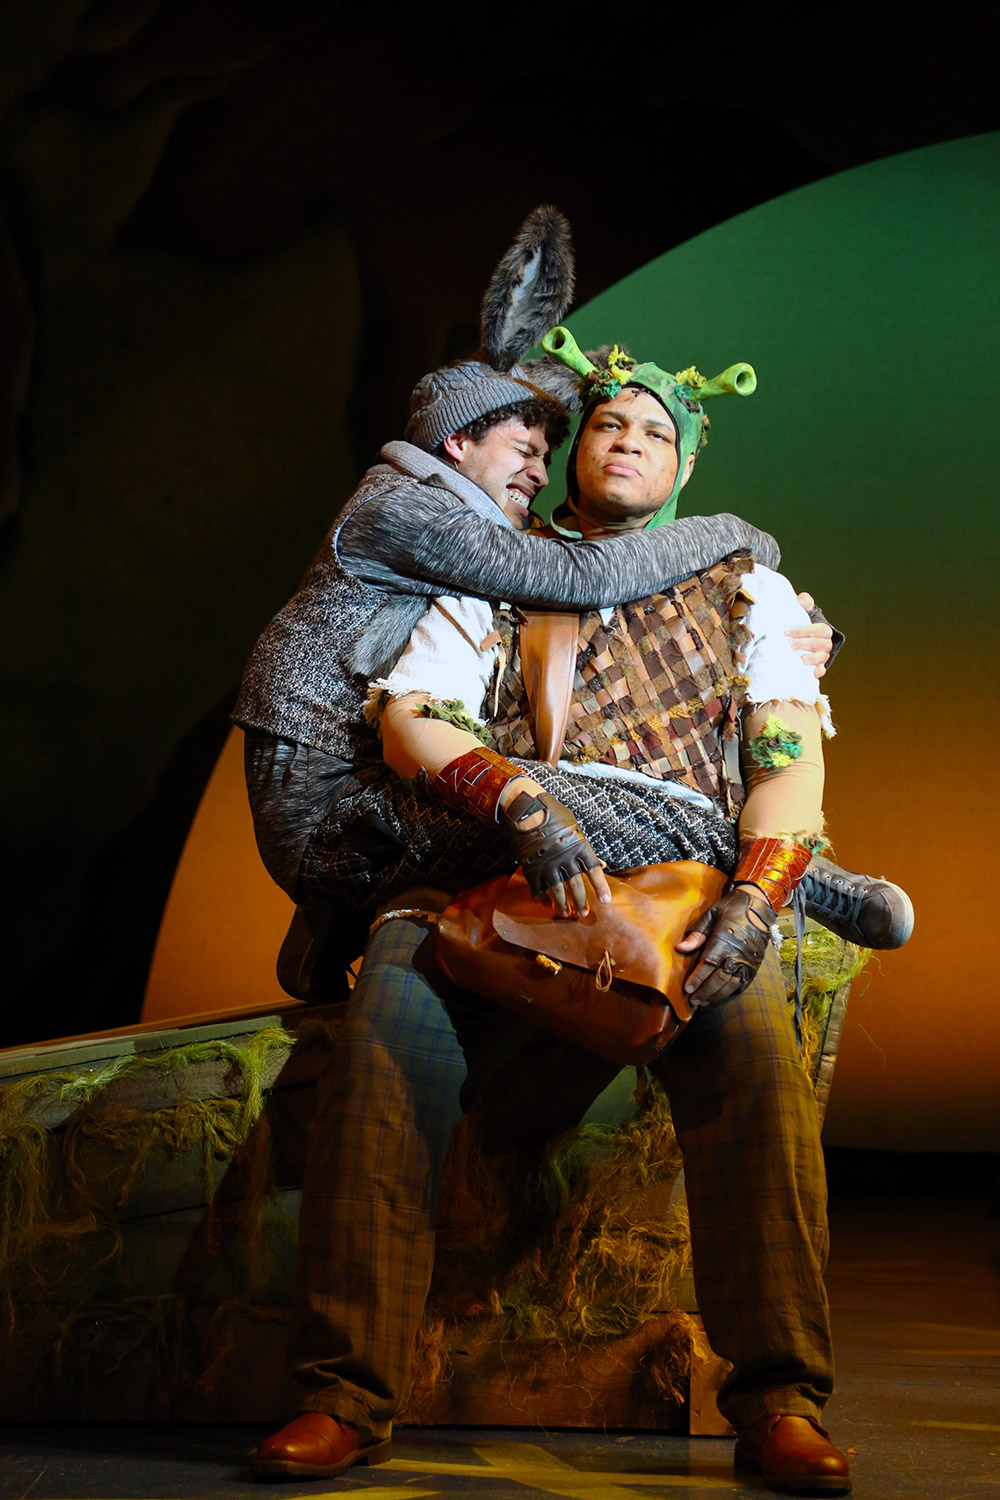 Donkey leaps into a begrudging Shrek's arms on the dimly lit stage